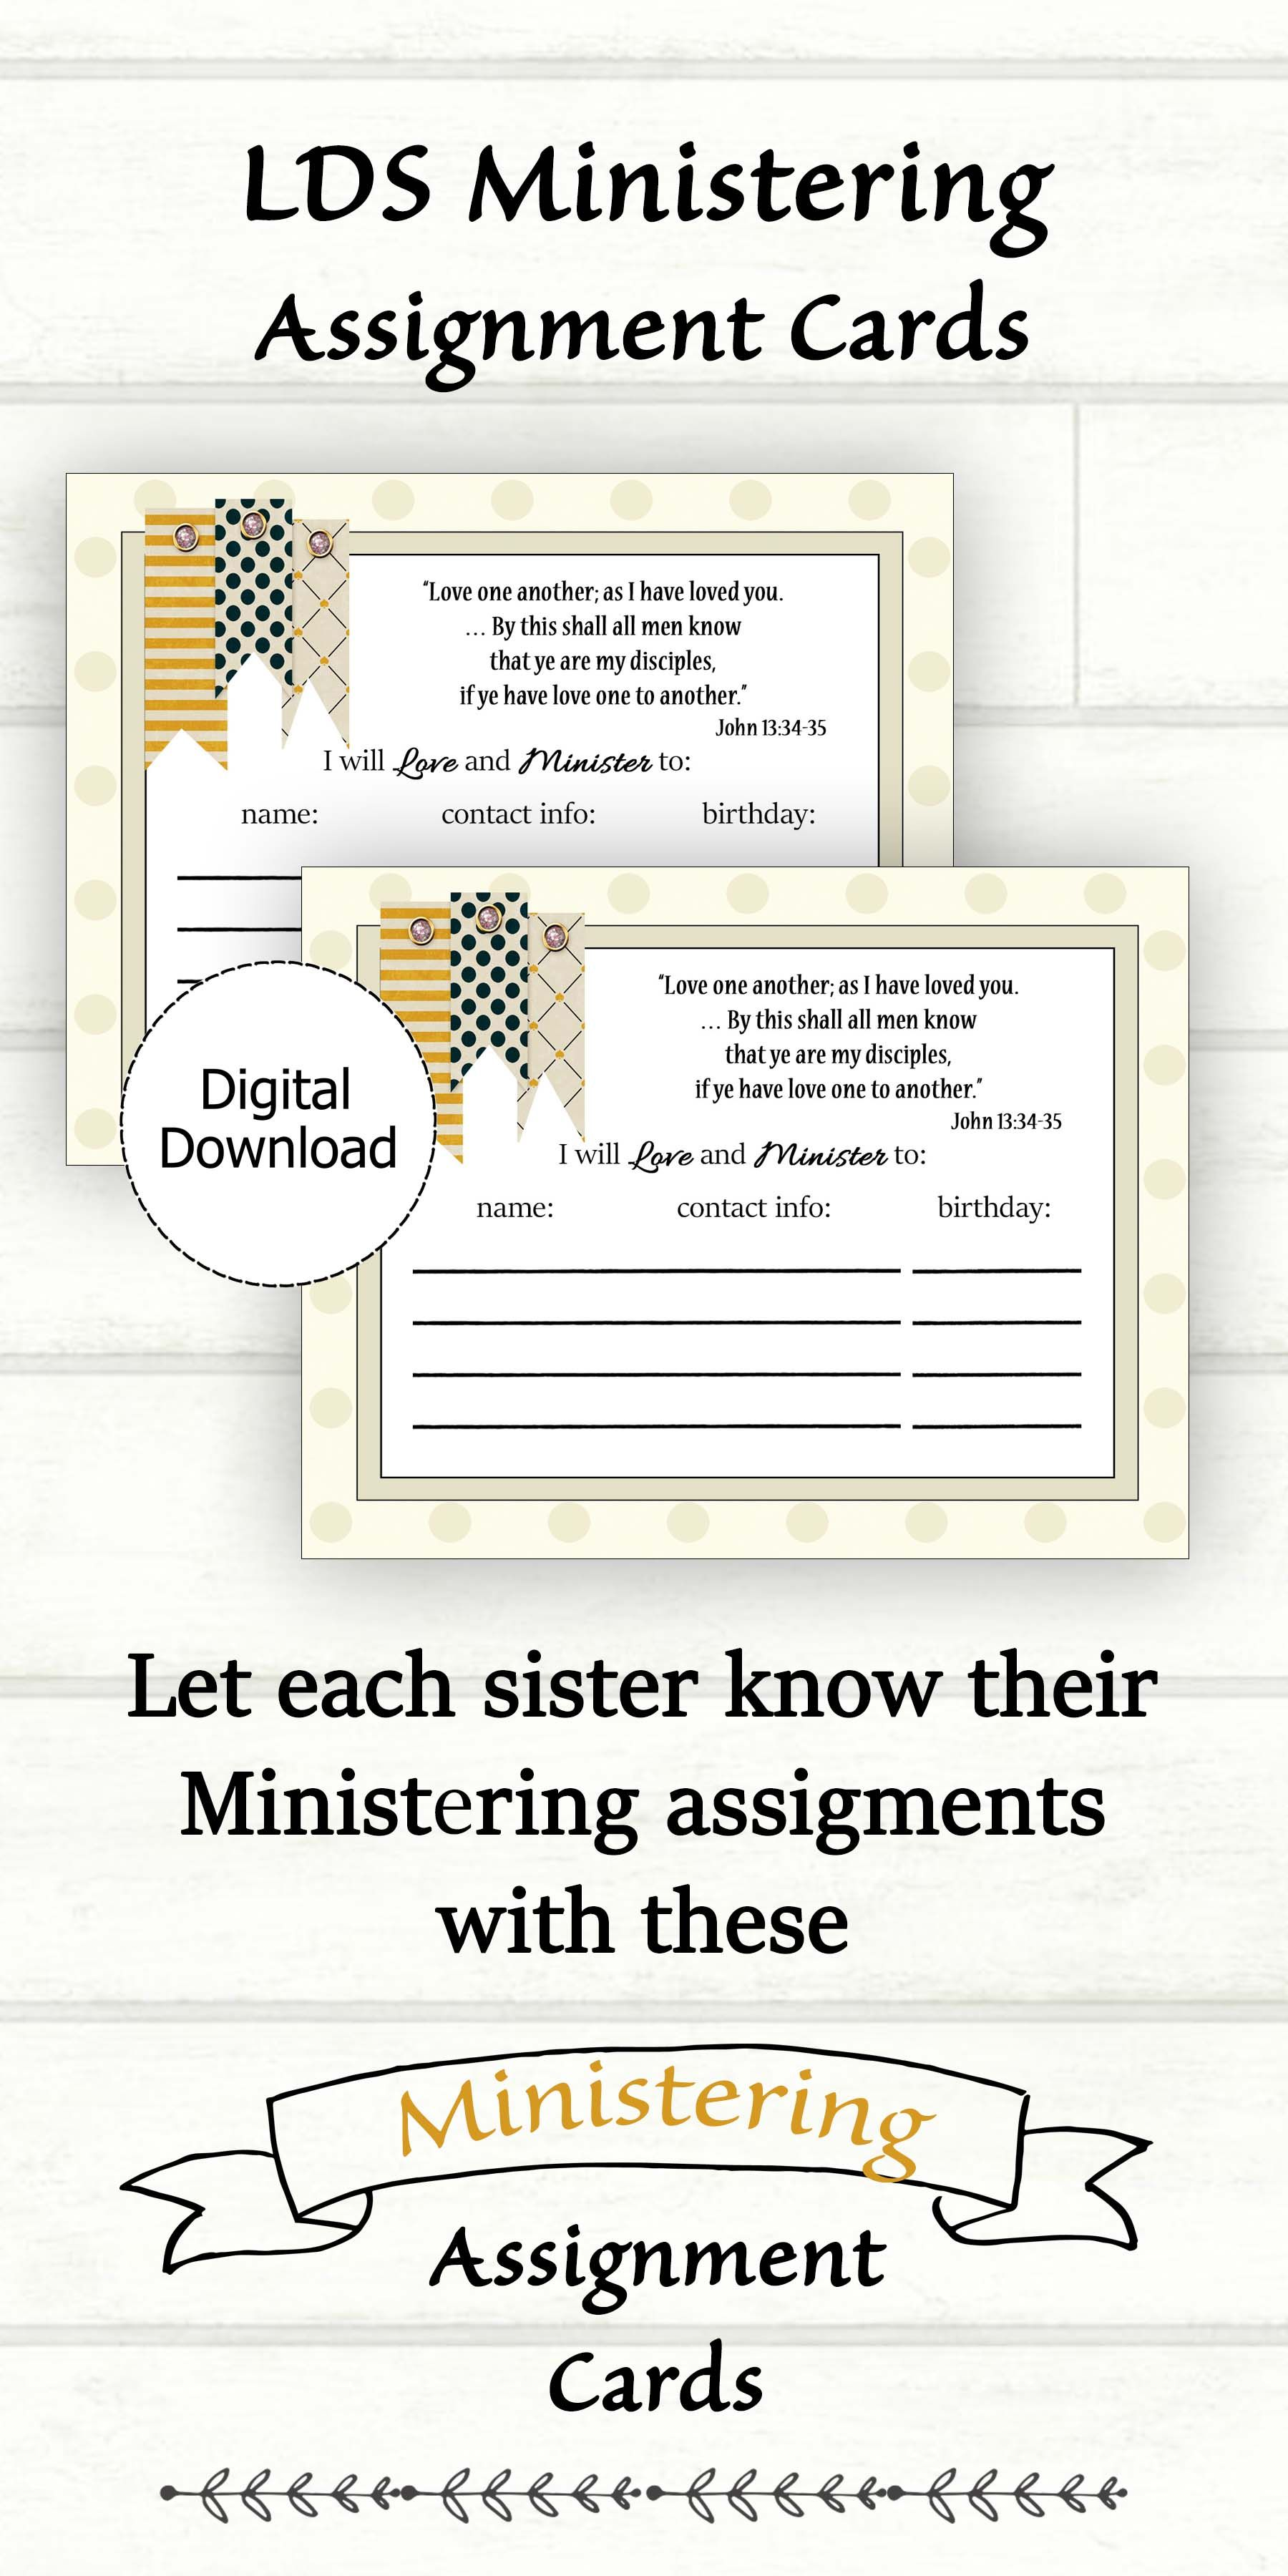 Ministering Assignment Card Printable for Ministering